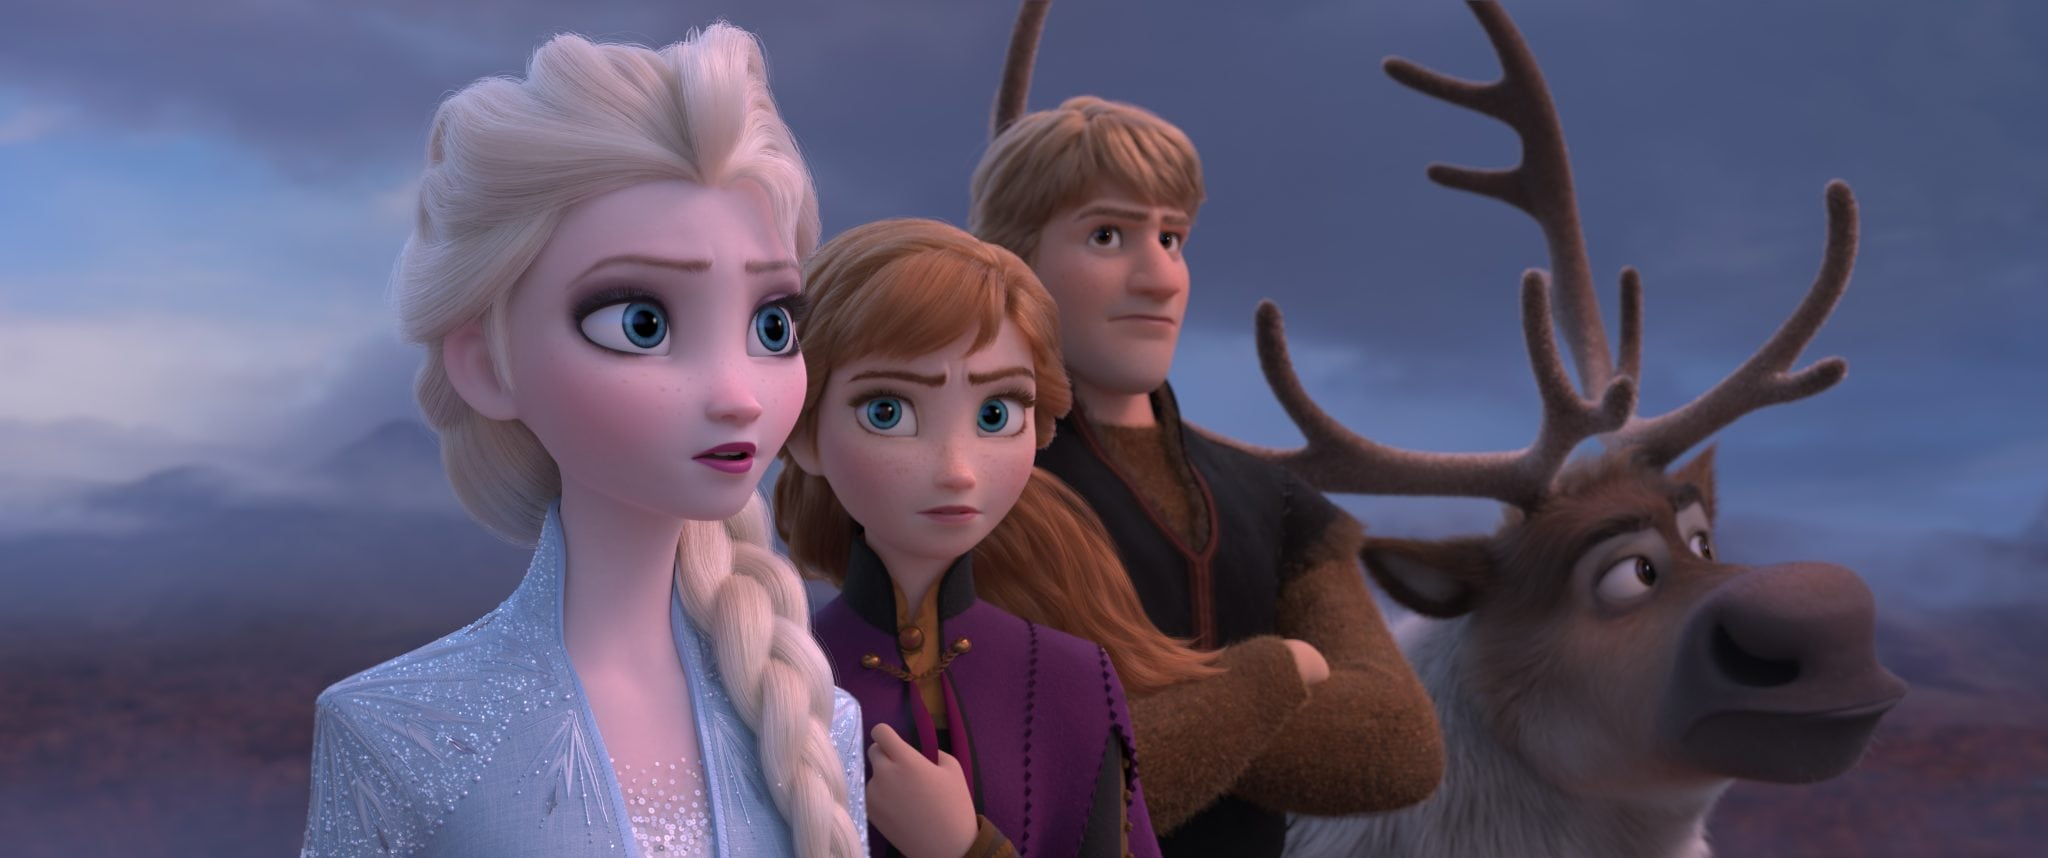 FROZEN 2 Movie still